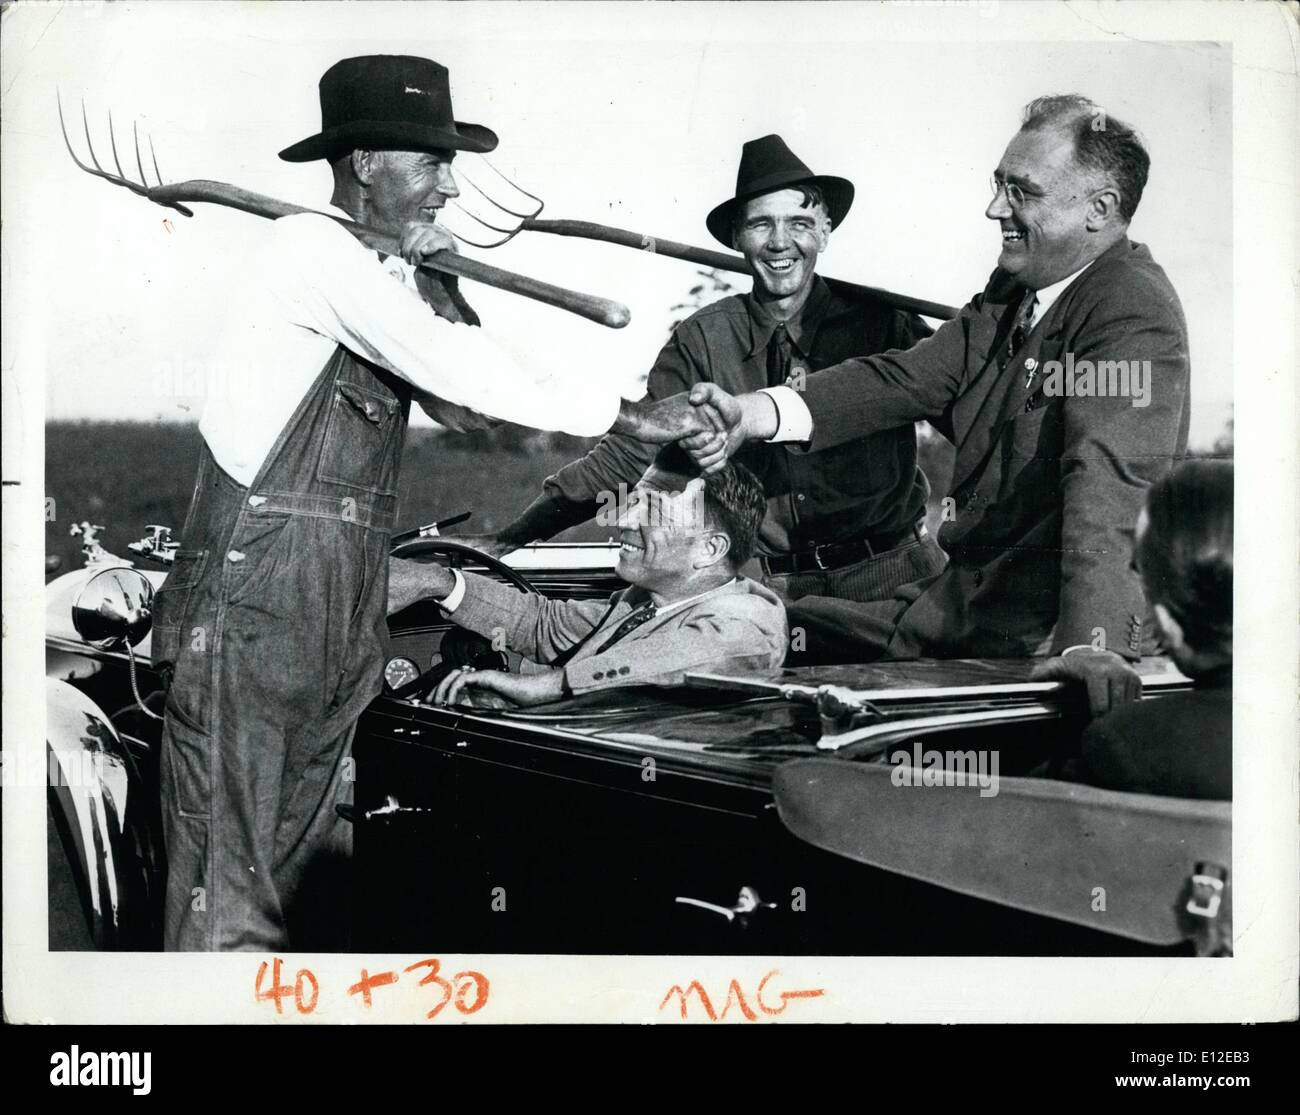 Dec. 16, 2011 - The advent of the auto caravan allowed candidates to get even closer to the people. Franklin D. Roosevelt and two Georgia farmers are all smiles at a meeting in 1932. Roosevelt, a distant cousin of Theodore, won four terms - a record. - Stock Image